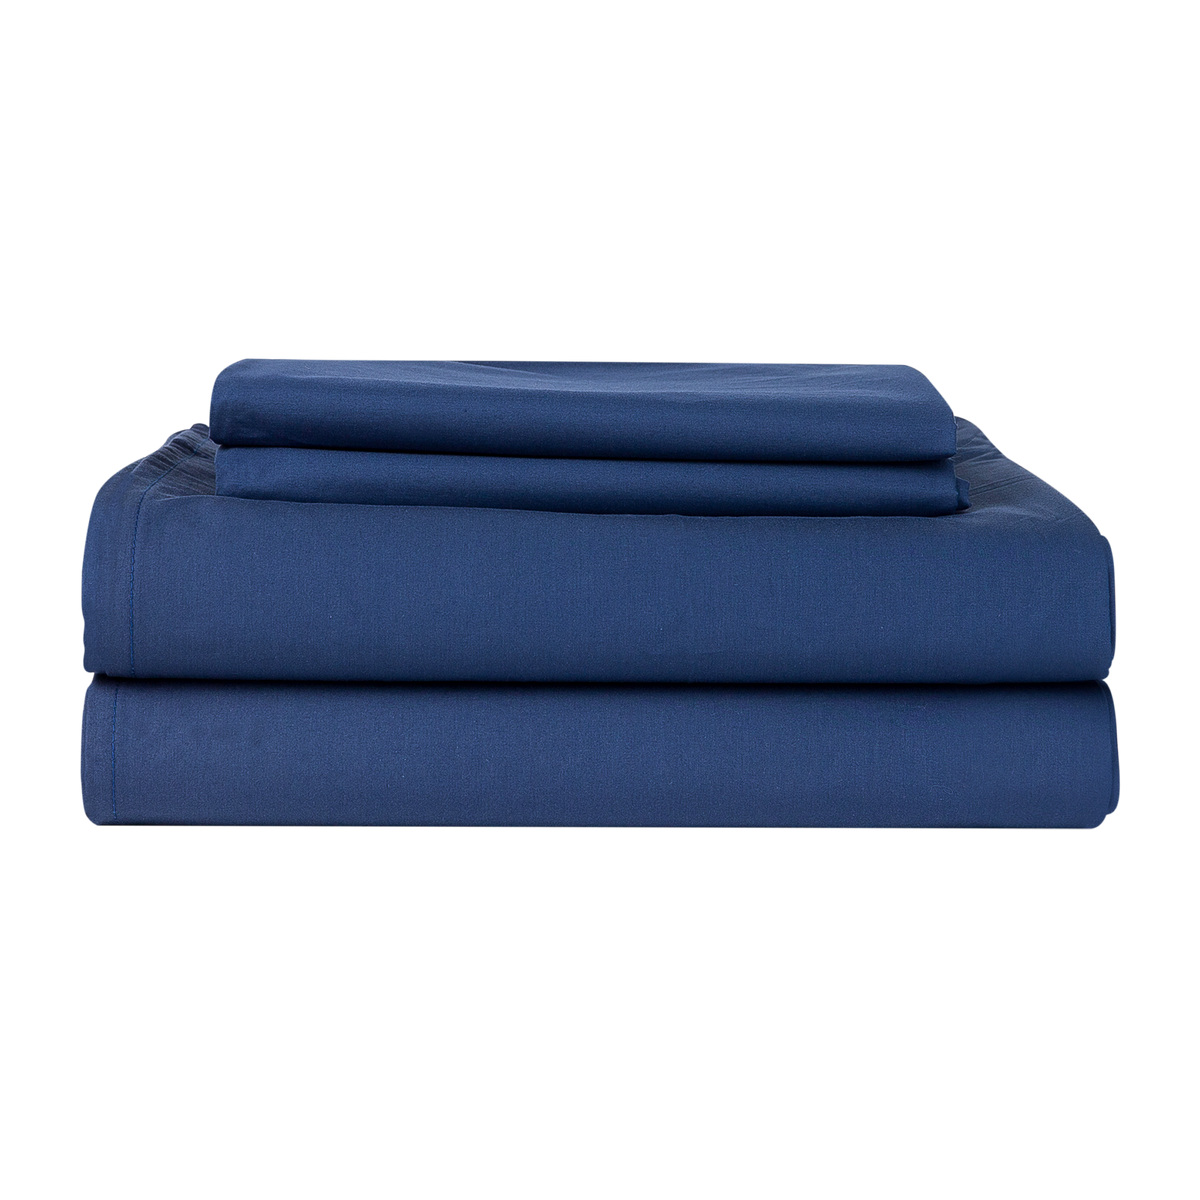 Percale 100% Egyptian Cotton Sheet Set Navy Blue